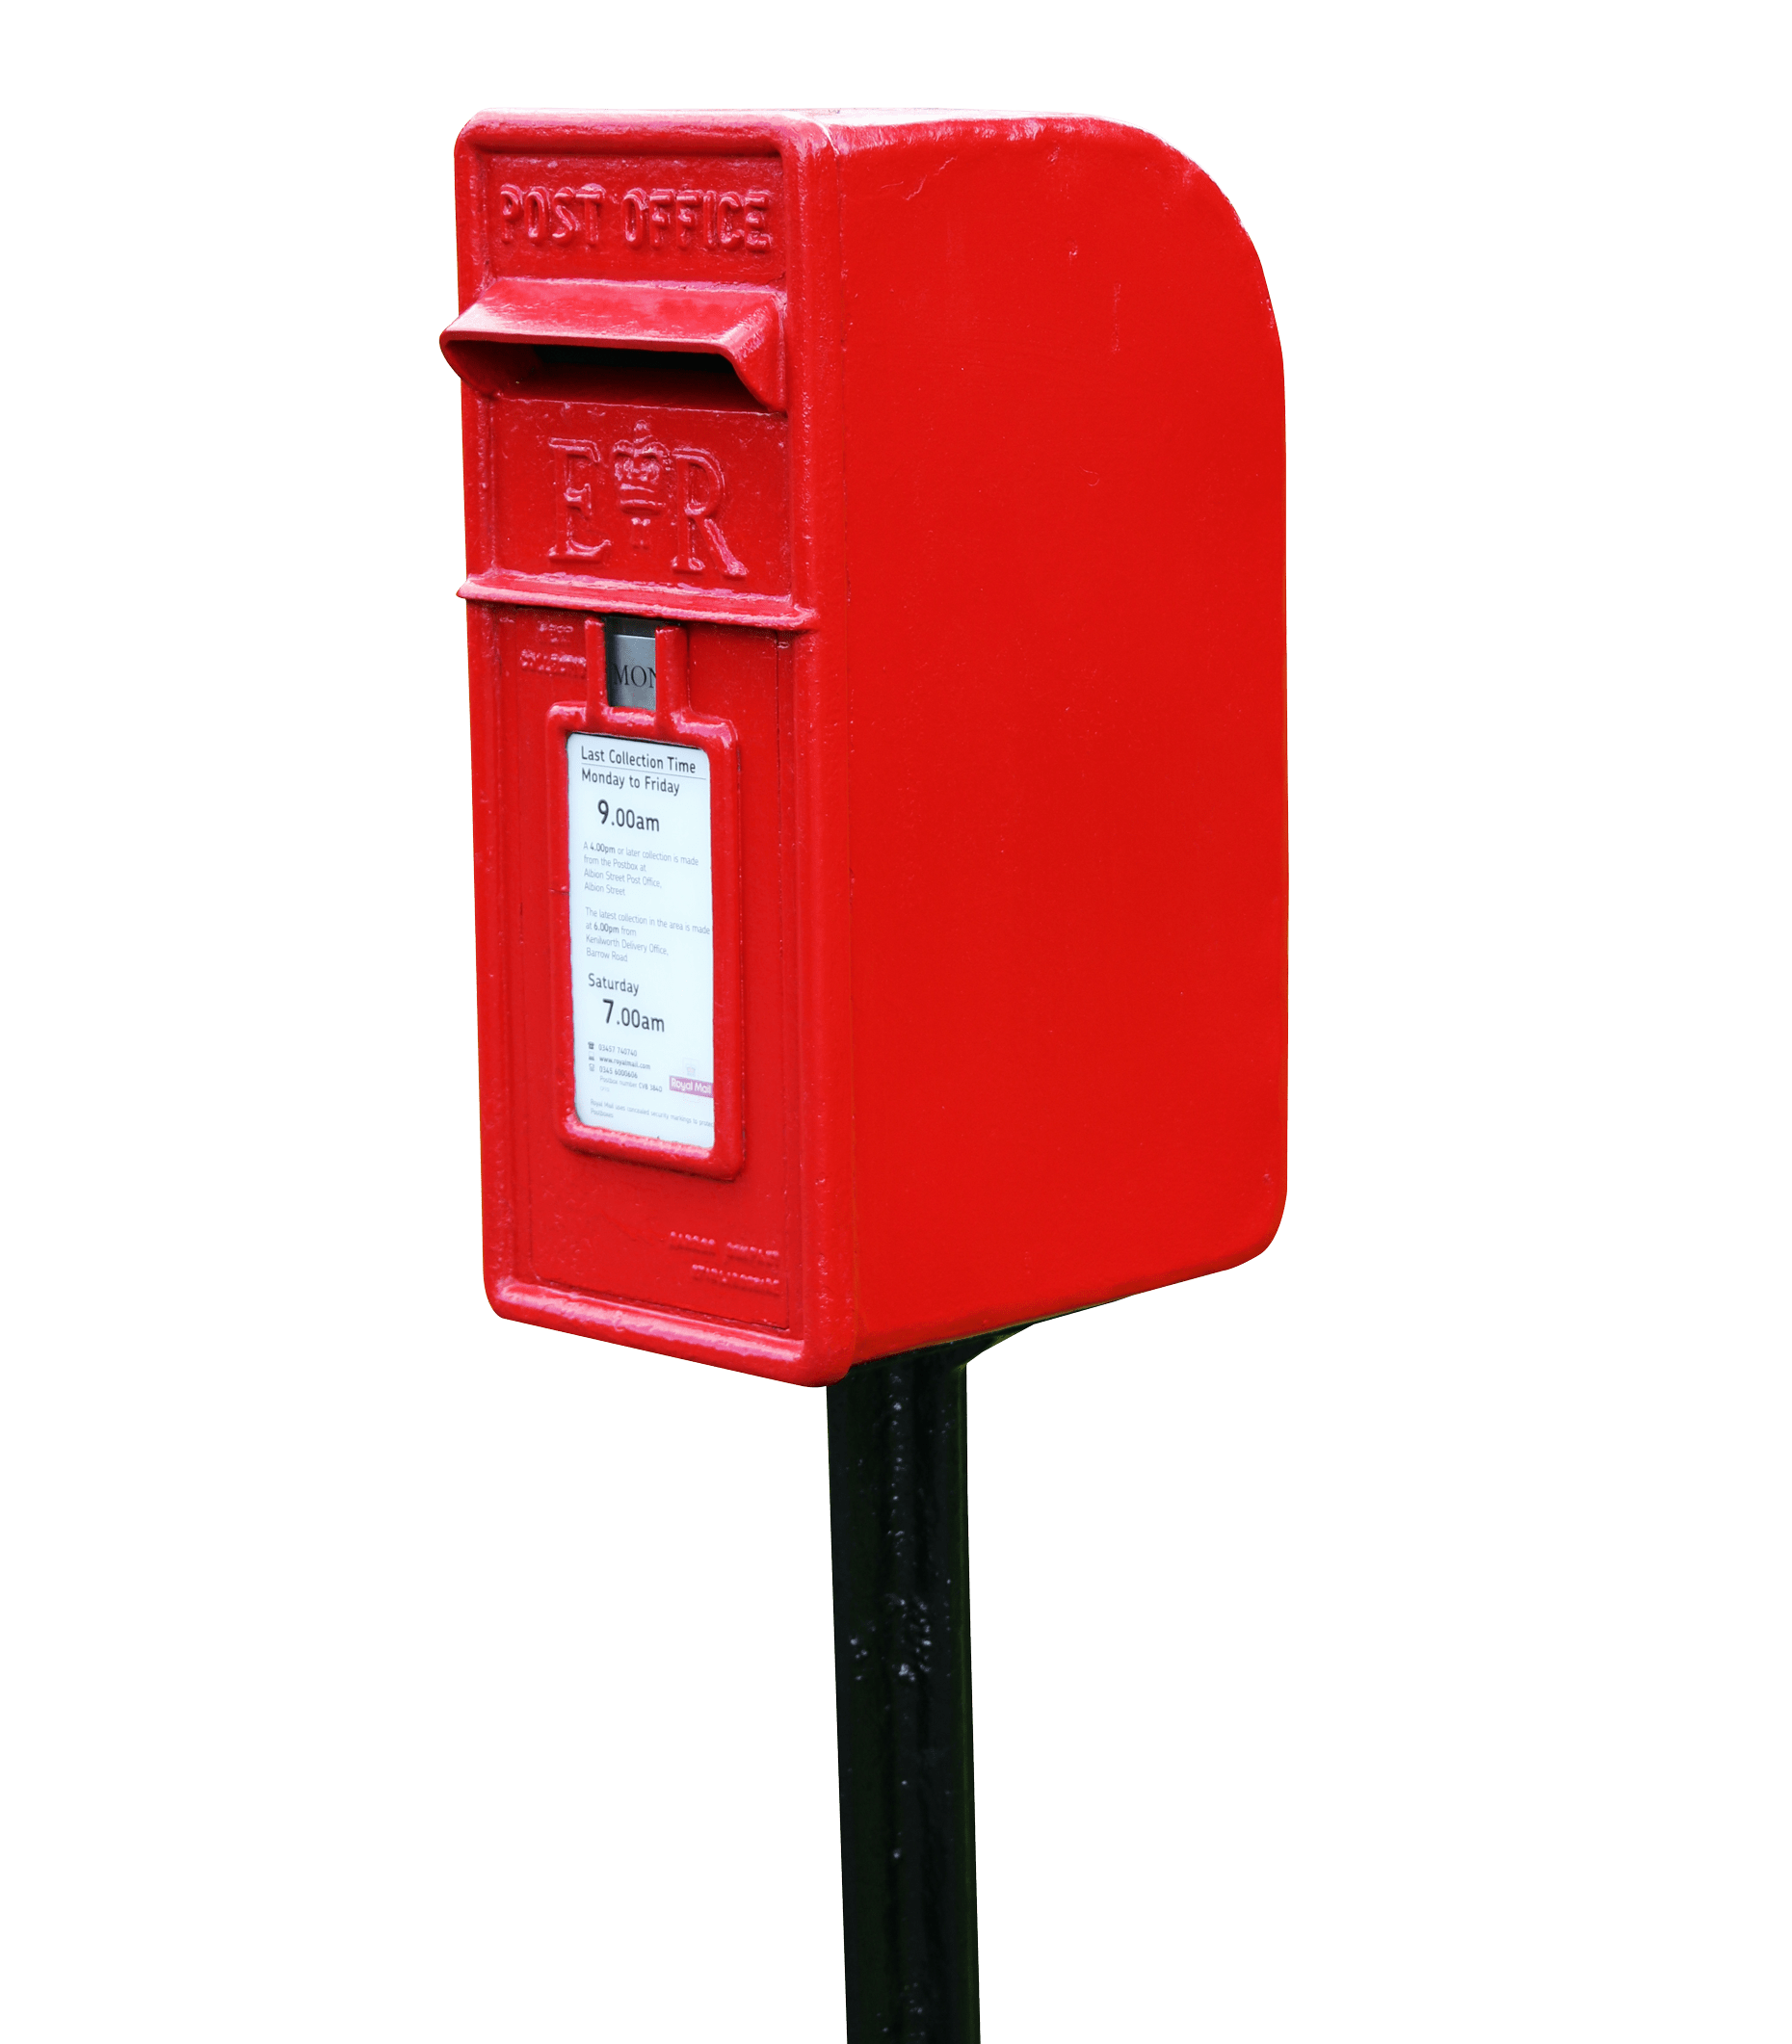 Red postbox on stand. Mailbox clipart buzon